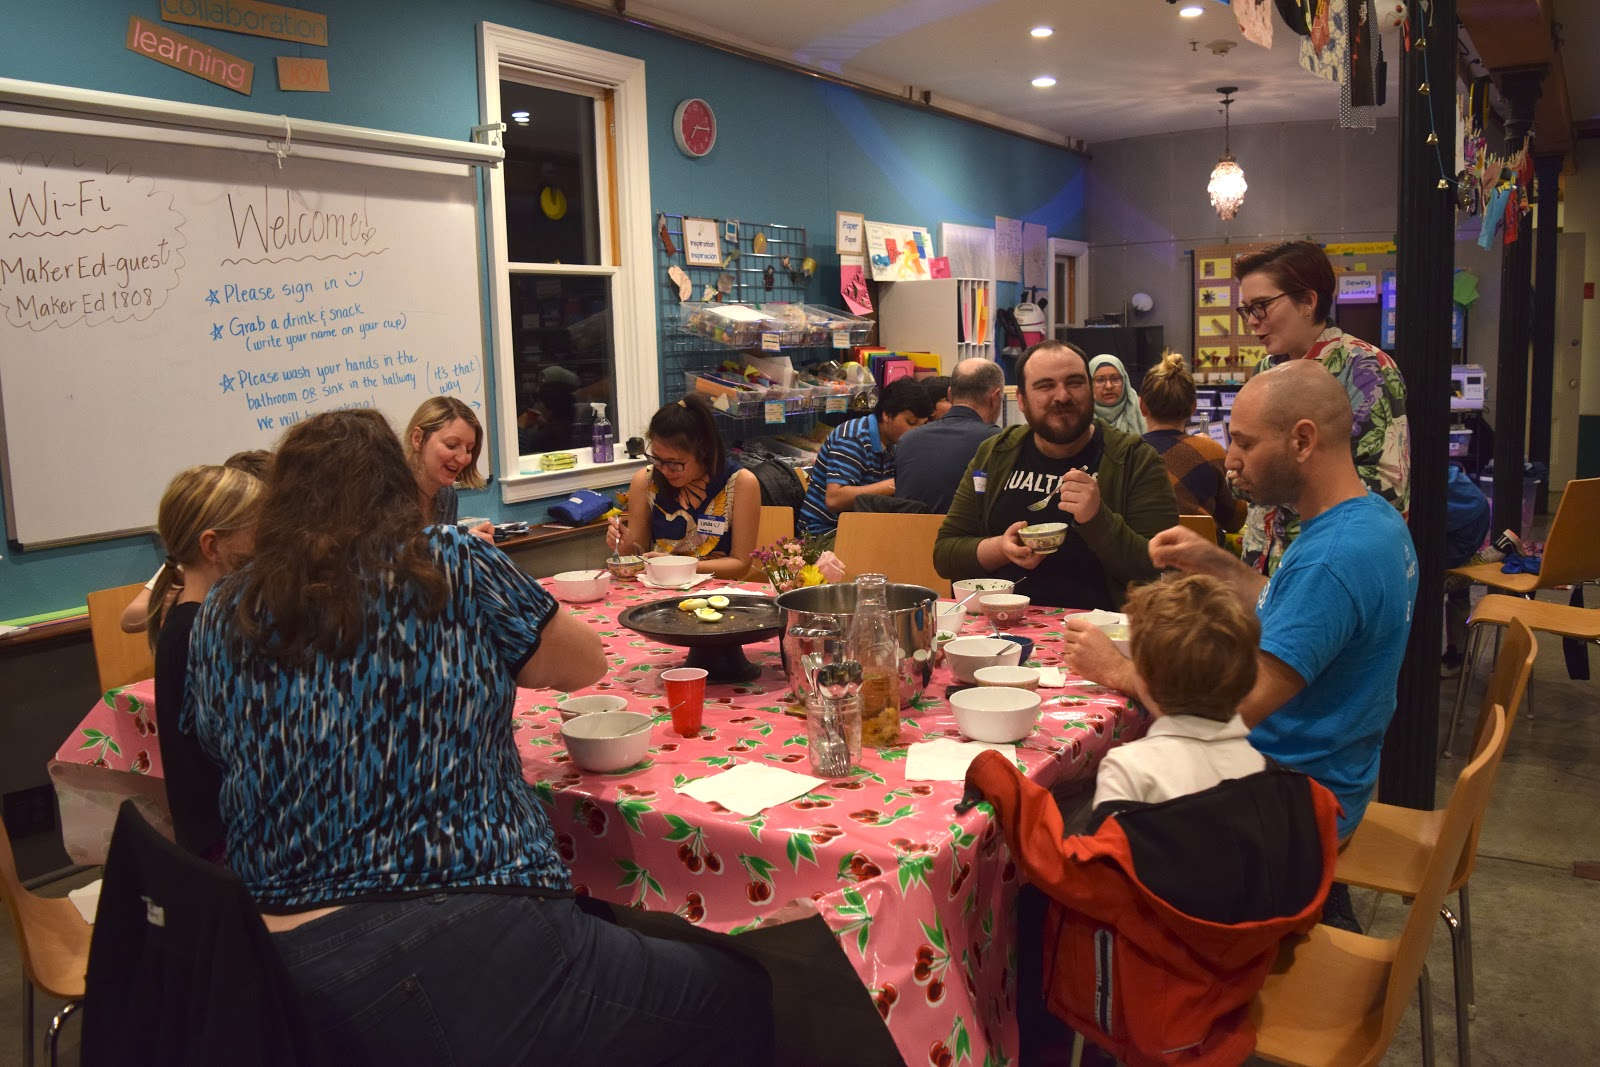 A group photograph at the Maker Ed Community Studio: meetup participants sit around a table smiling and eating together.